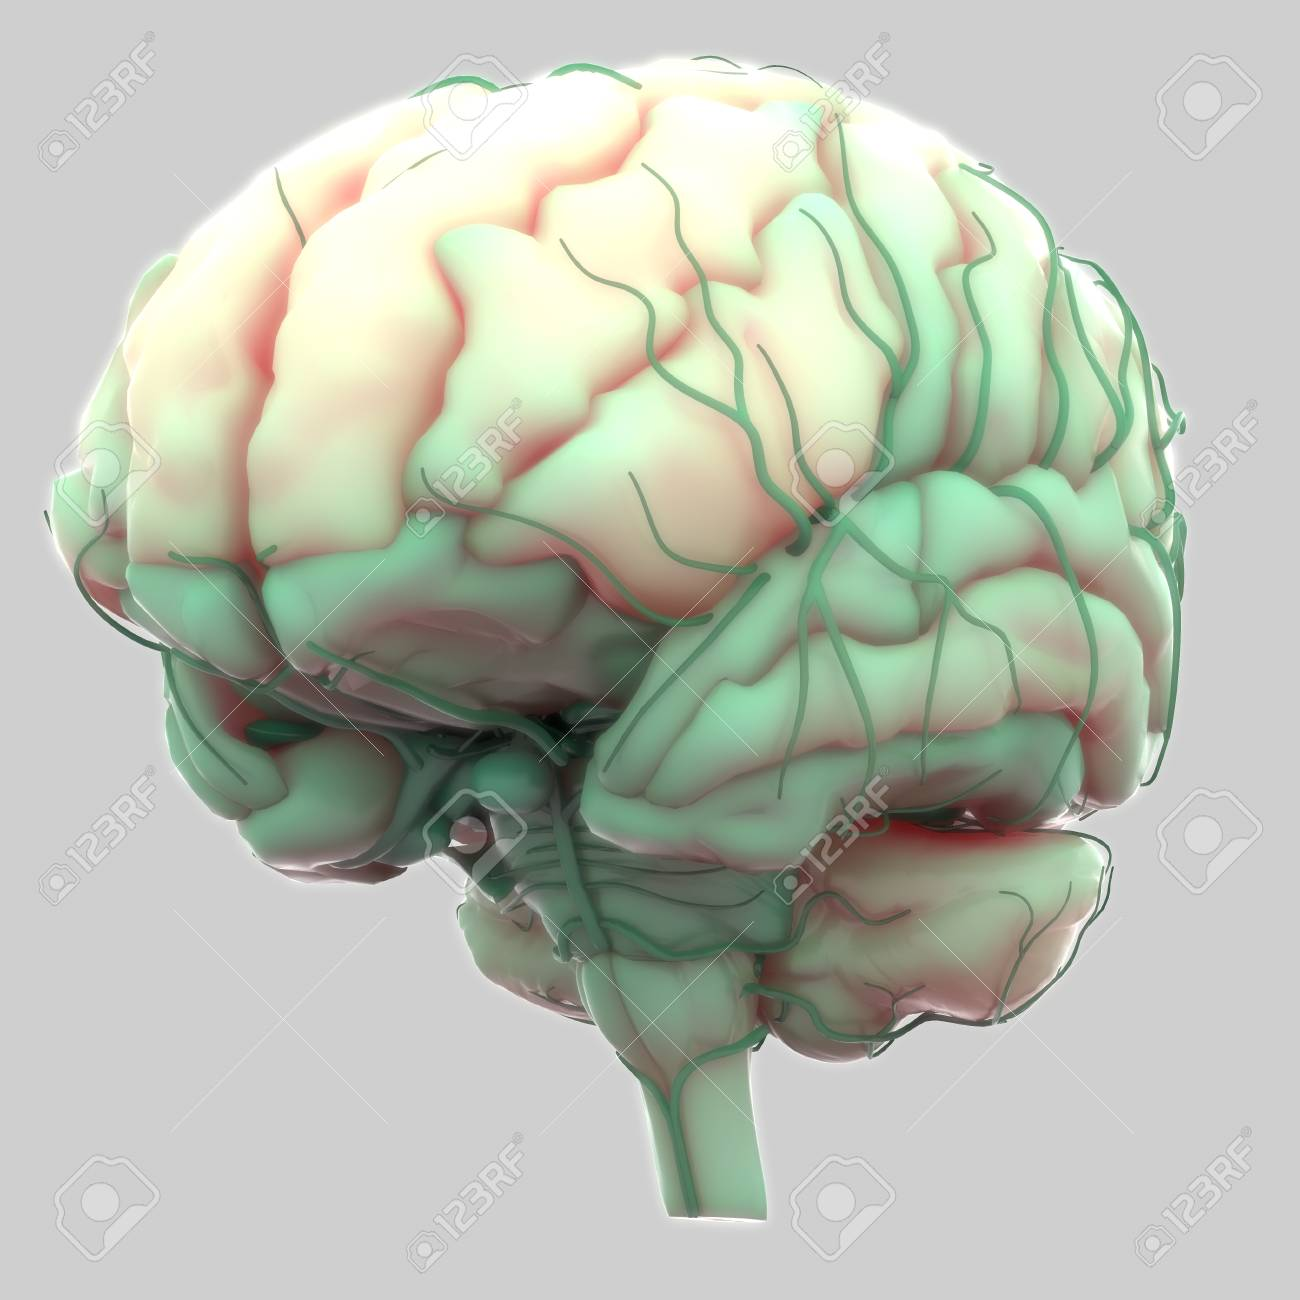 Human Brain With Nervous System Anatomy Stock Photo Picture And